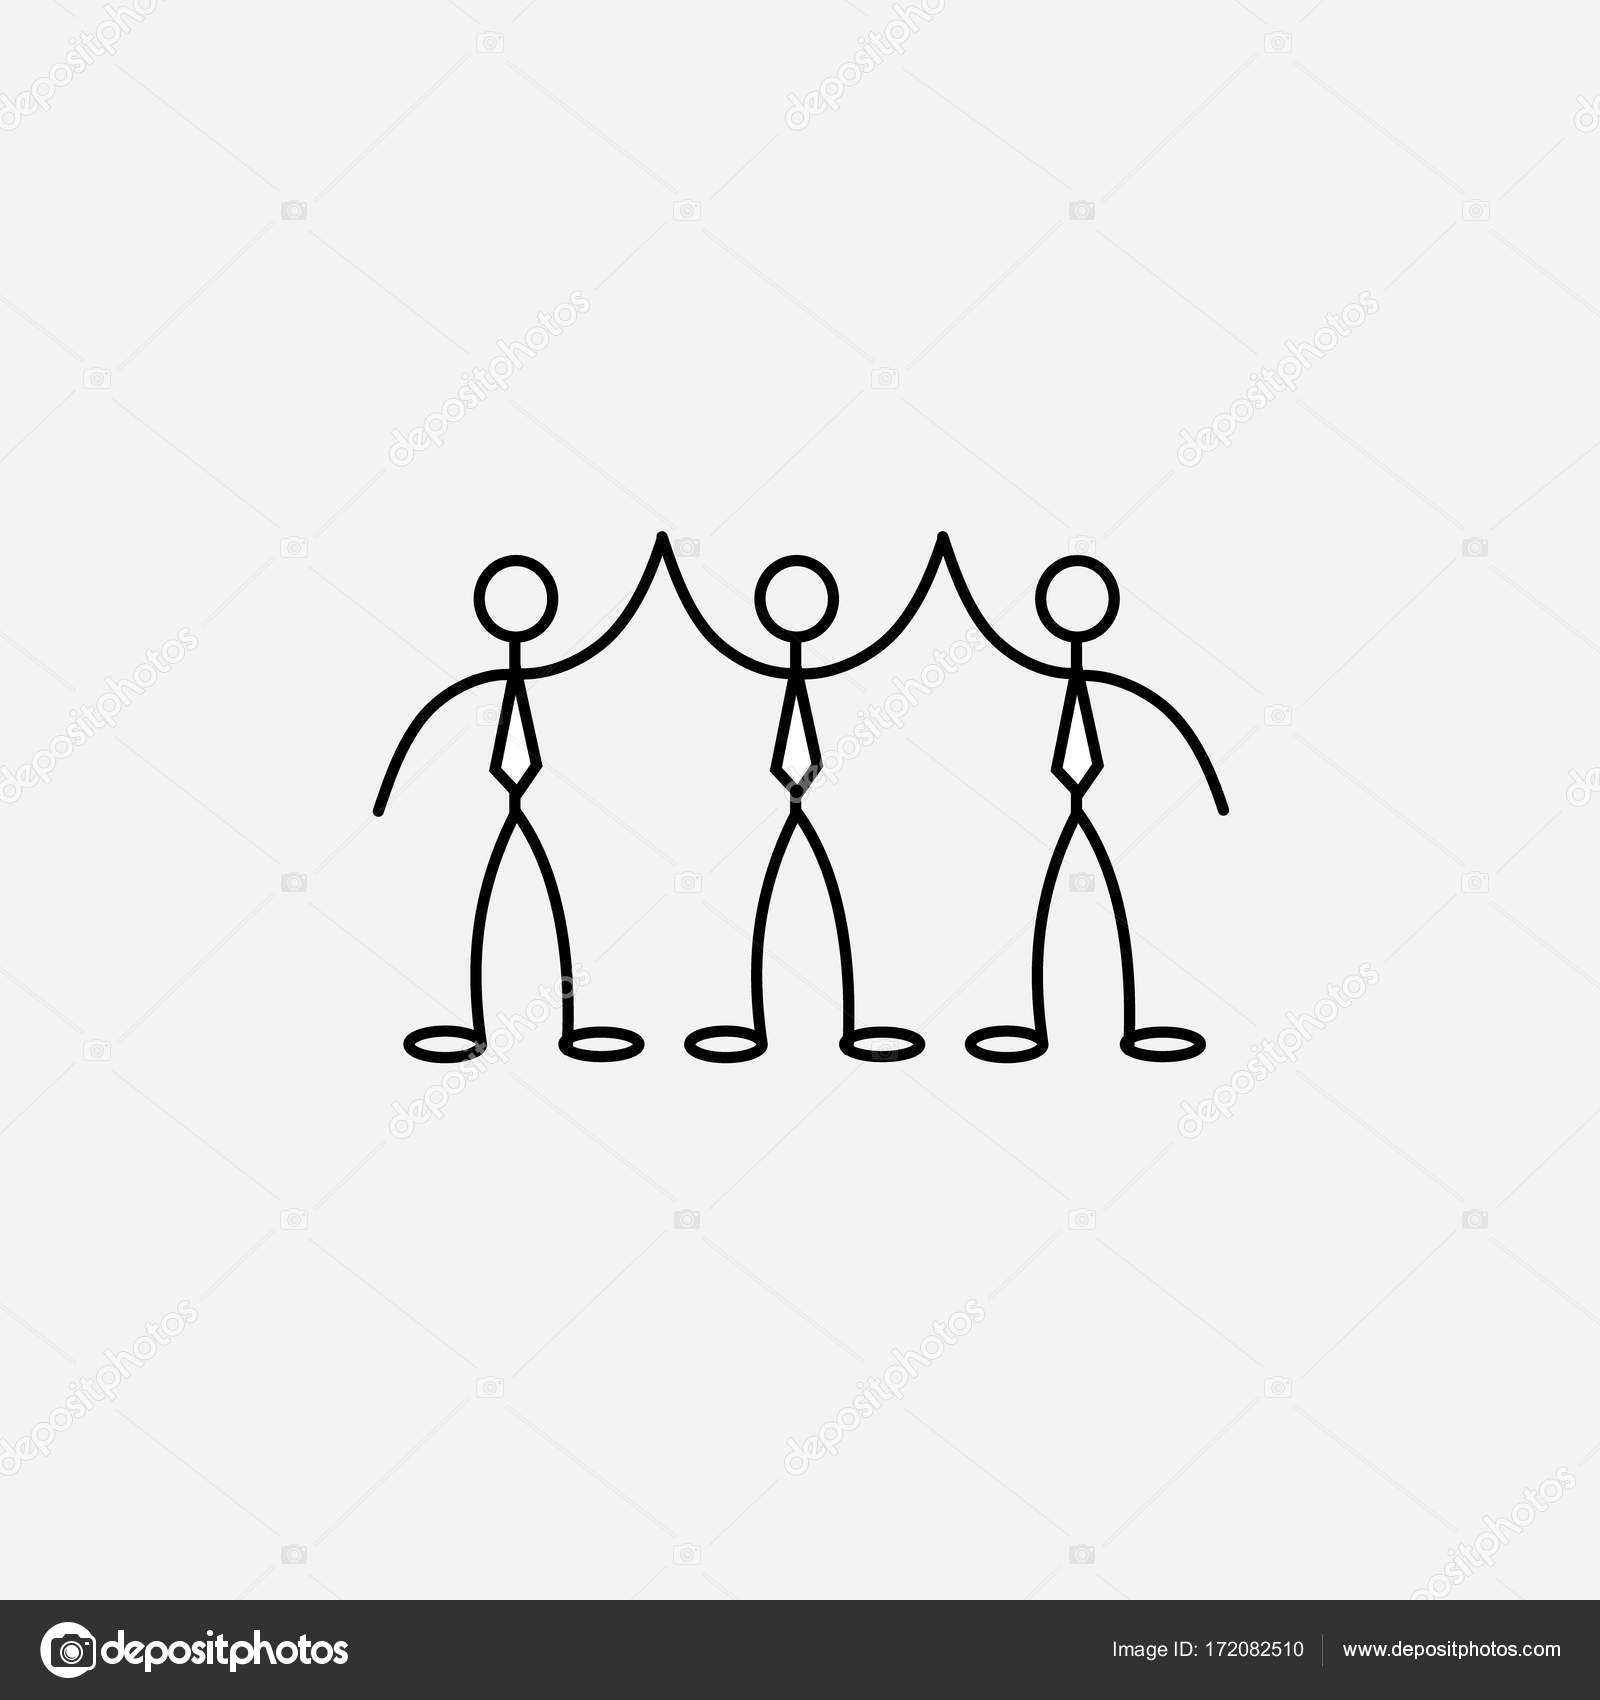 Drawings Of Little People Cartoon Icon Of Sketch Little People Stock Vector C Binik1 172082510